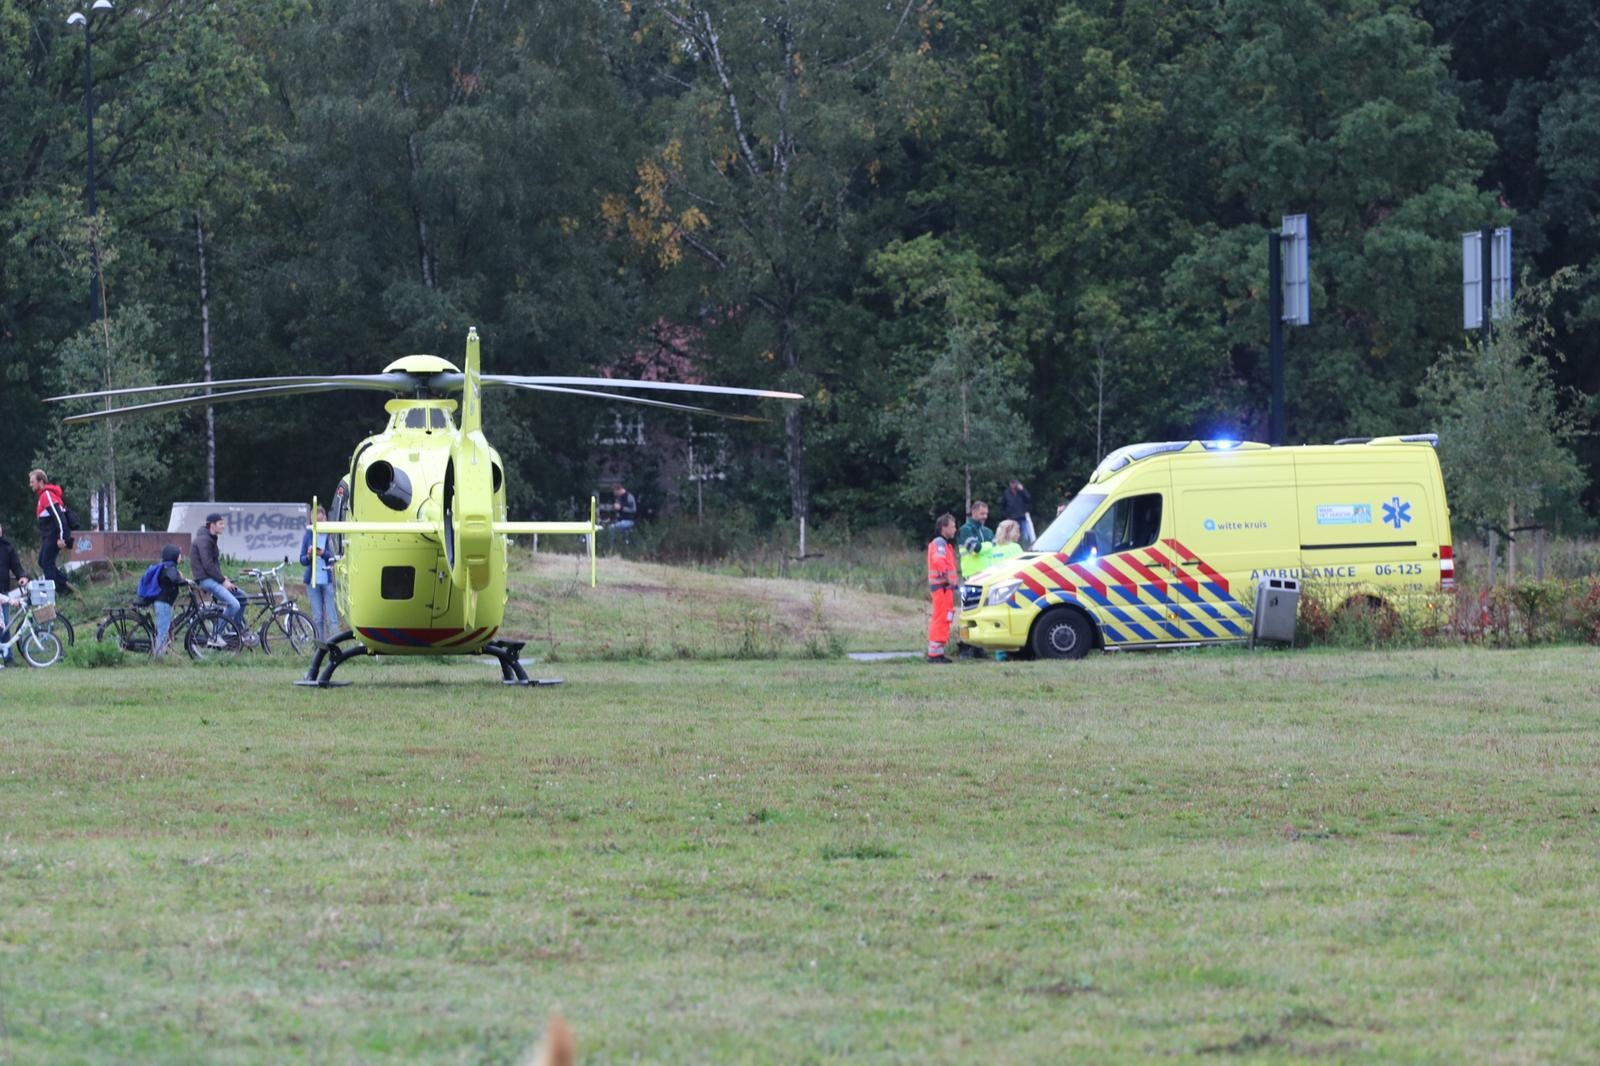 *VIDEO* Traumahelikopter opgeroepen na botsing auto en scooter